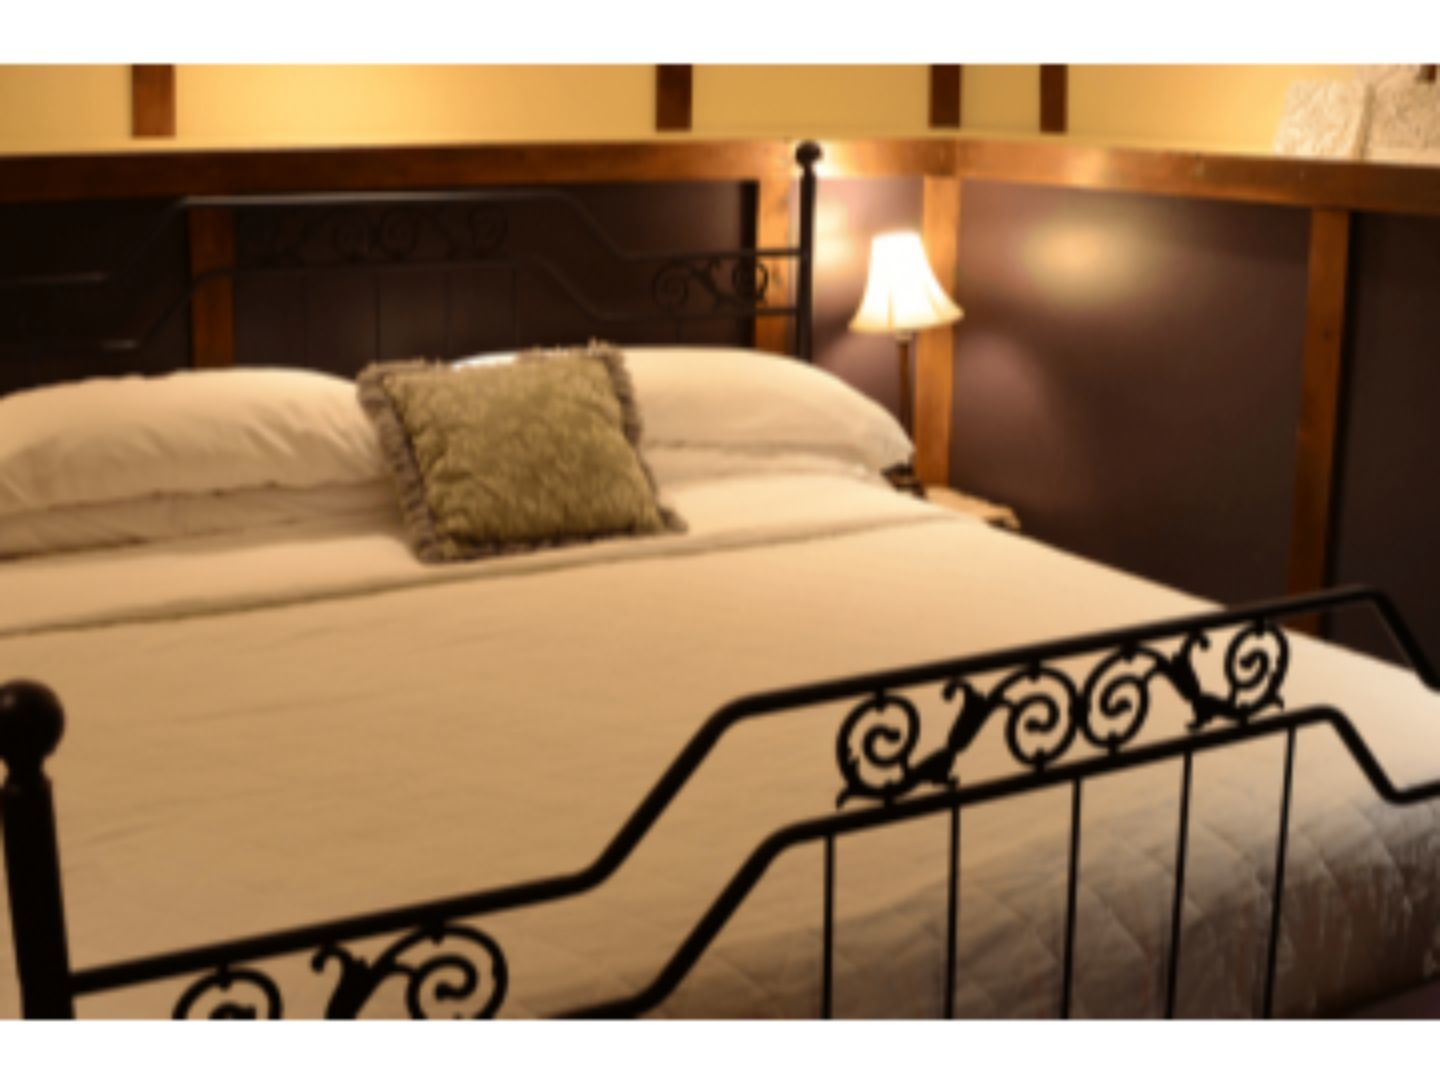 A bedroom with a bed in a hotel room at Whispering Pines Bed & Breakfast.